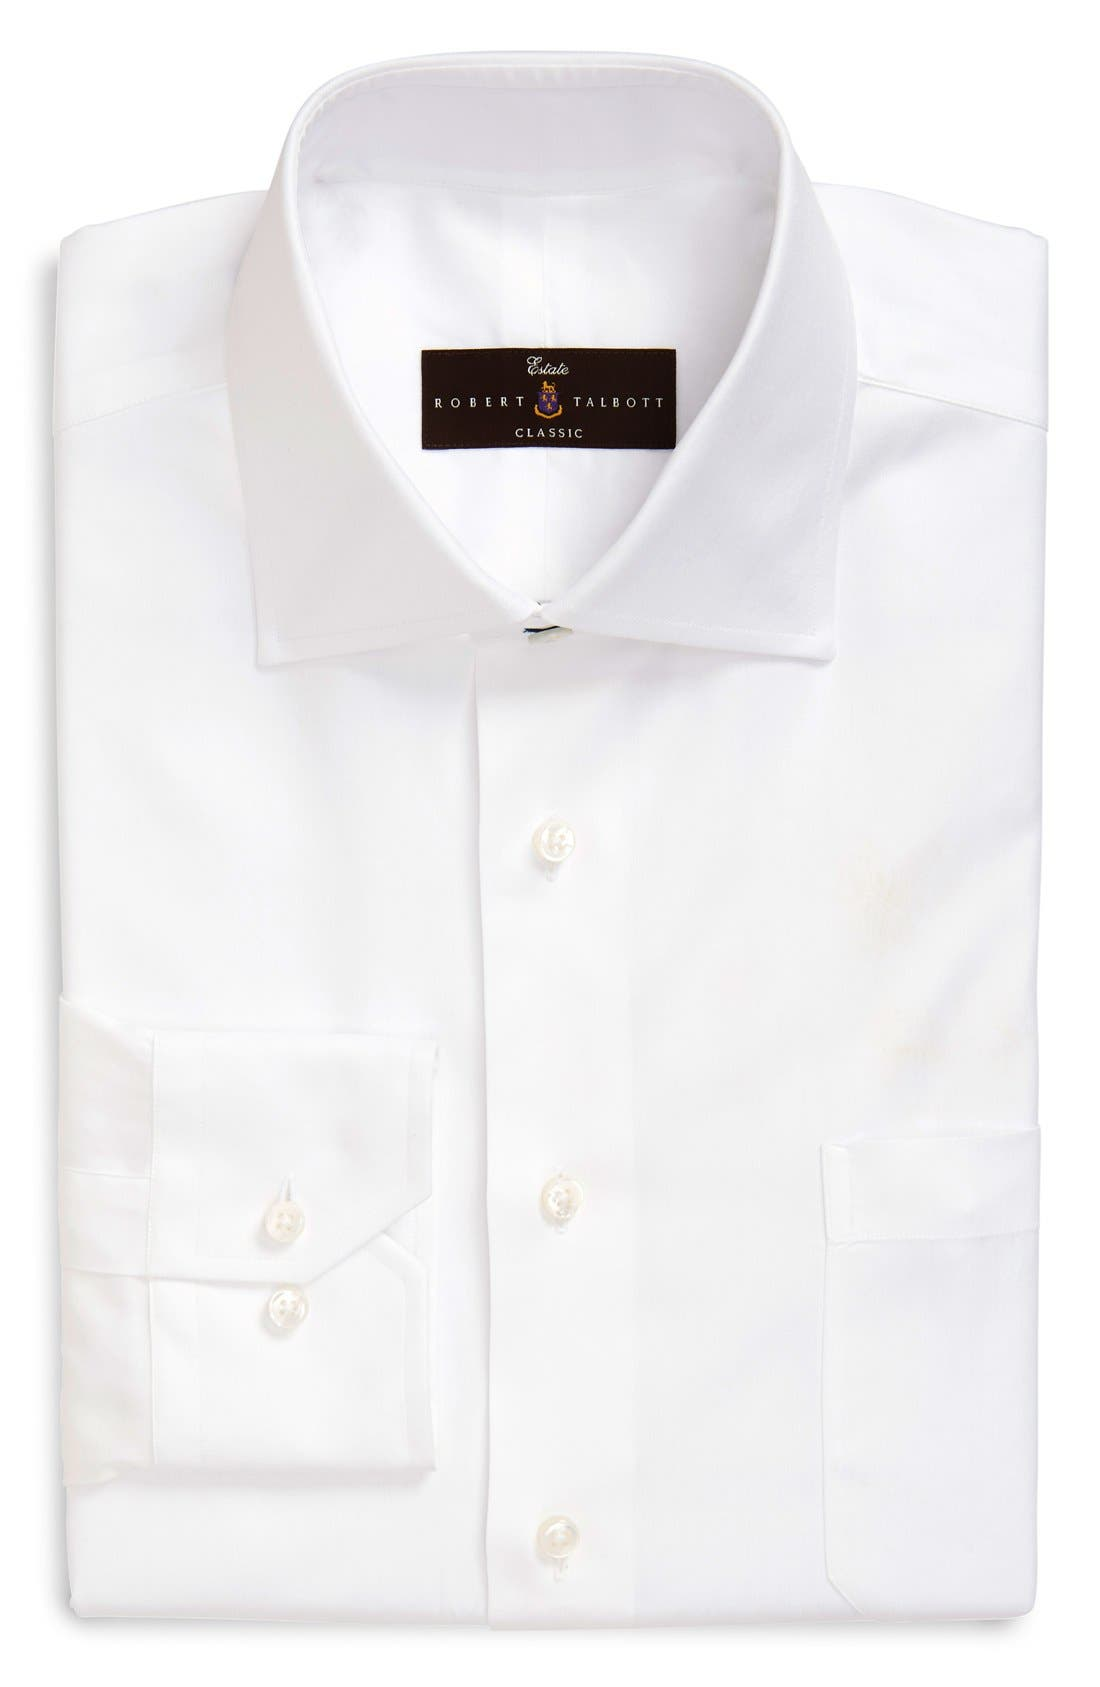 Robert Talbott Regular Fit Solid Dress Shirt